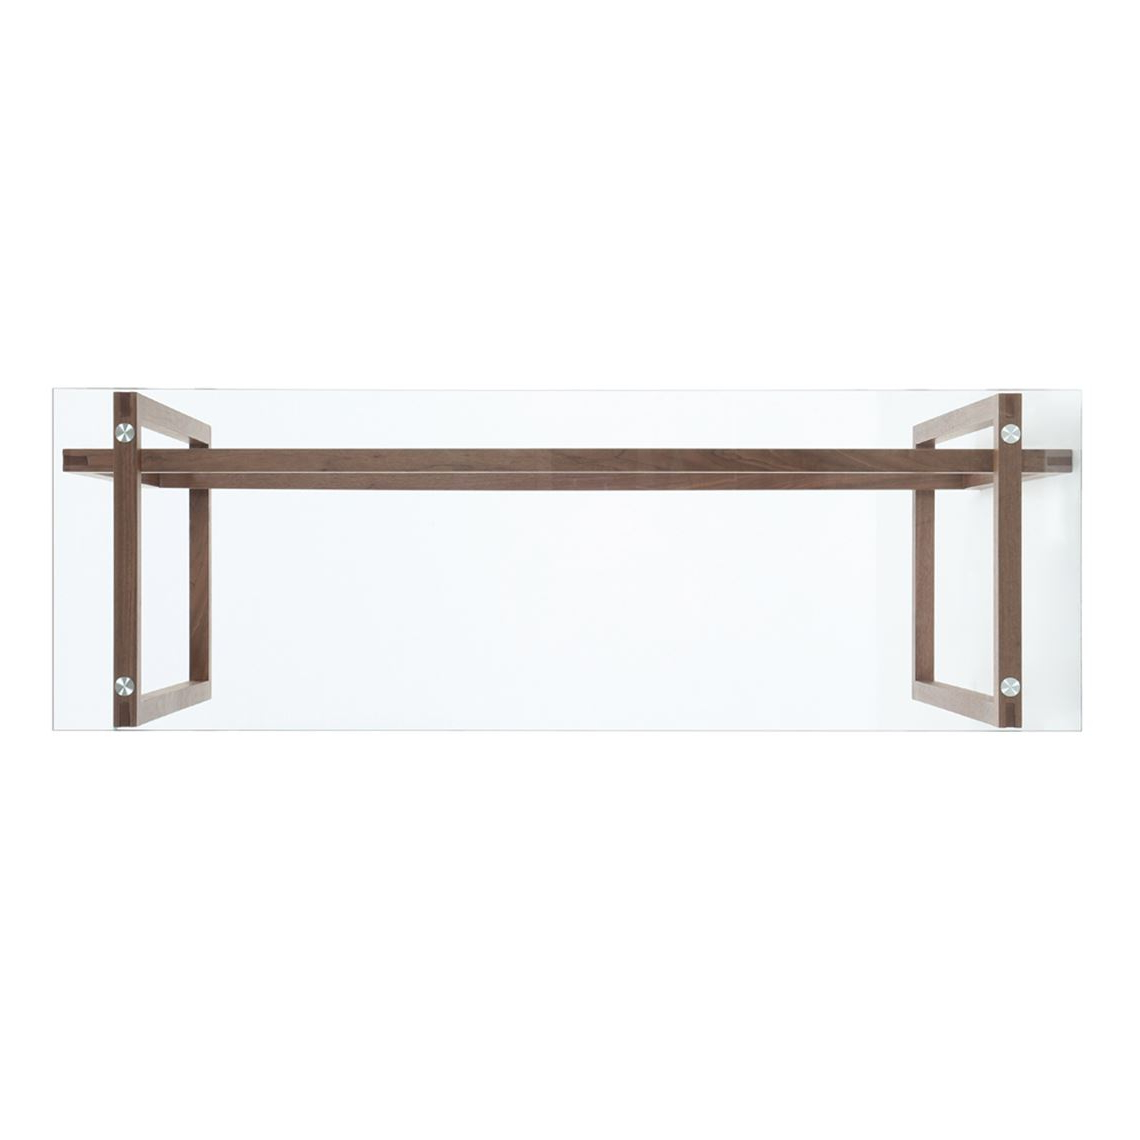 Freedom For Widely Used Kyra Console Tables (View 6 of 20)